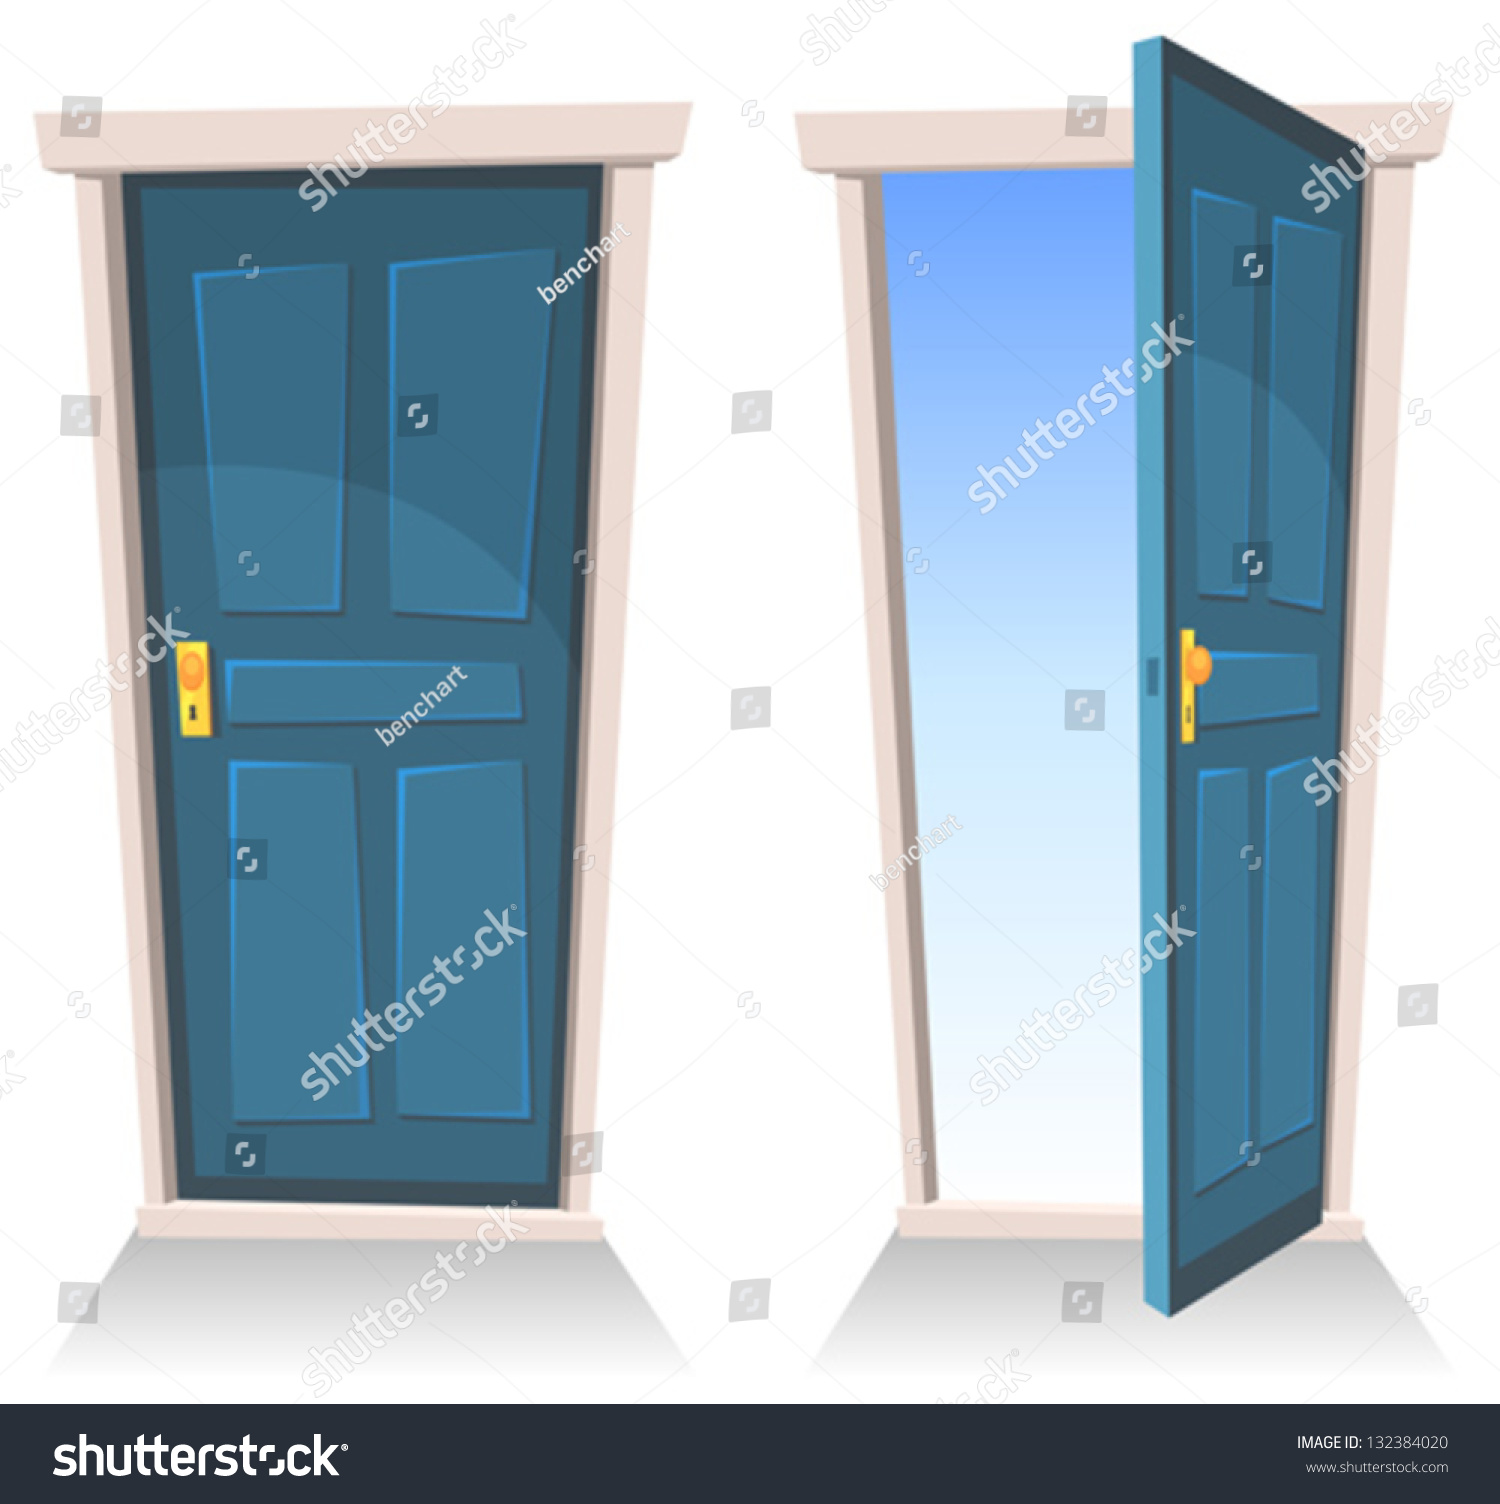 Cartoon person opening a door doors closed and open illustration